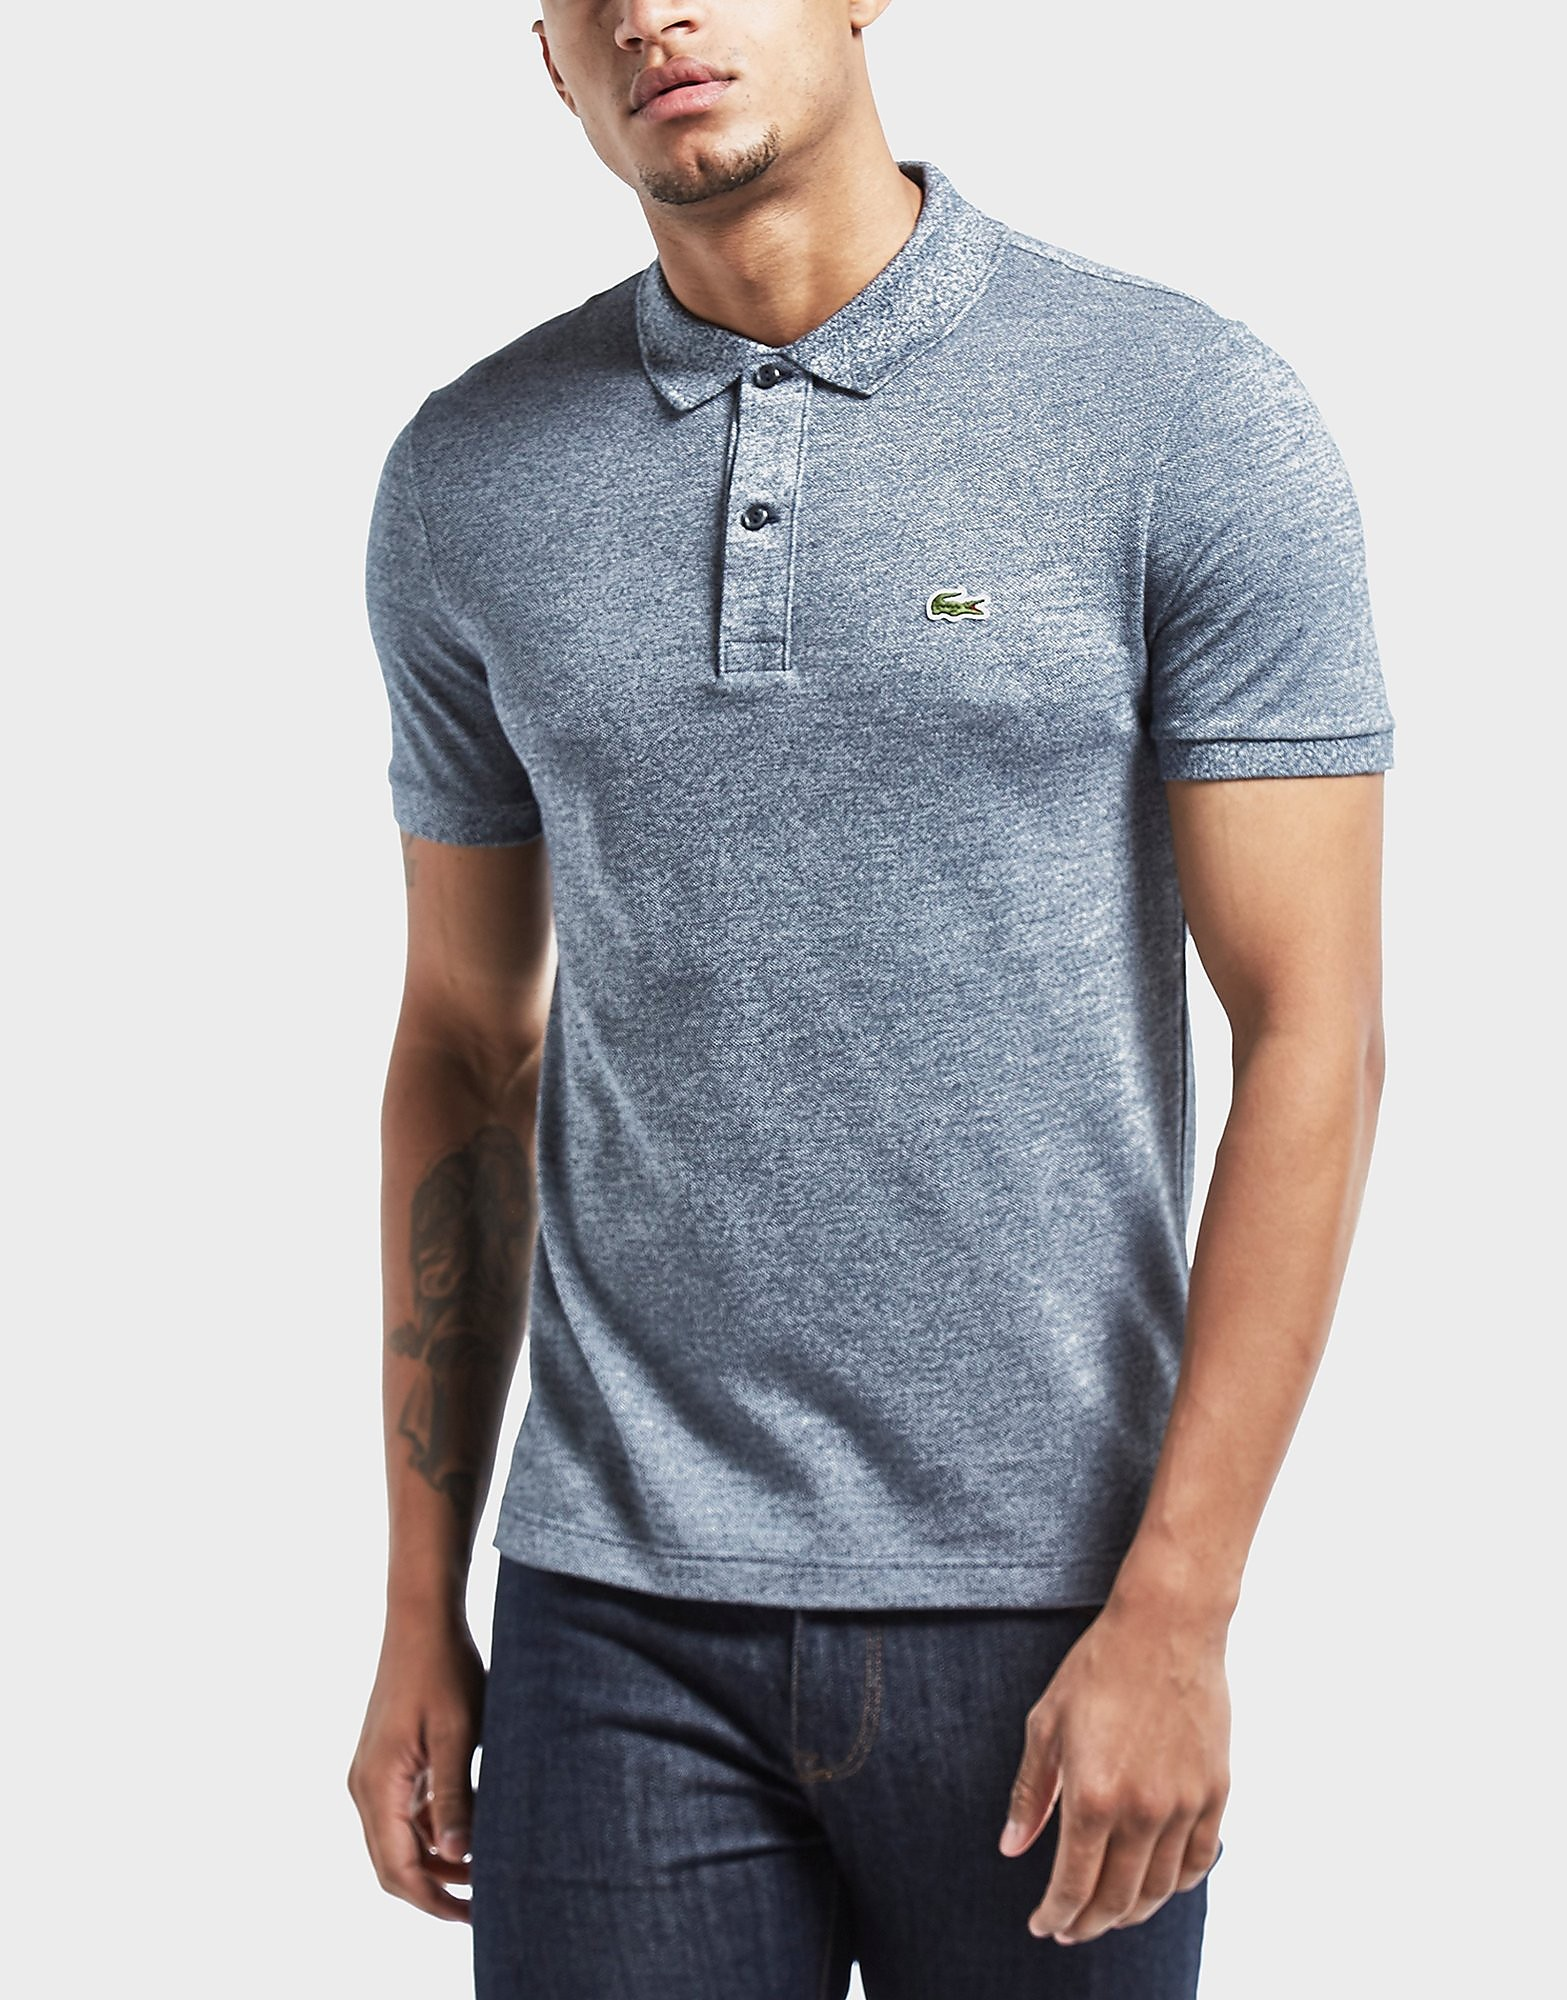 Lacoste Slim Fit Short Sleeve Polo Shirt